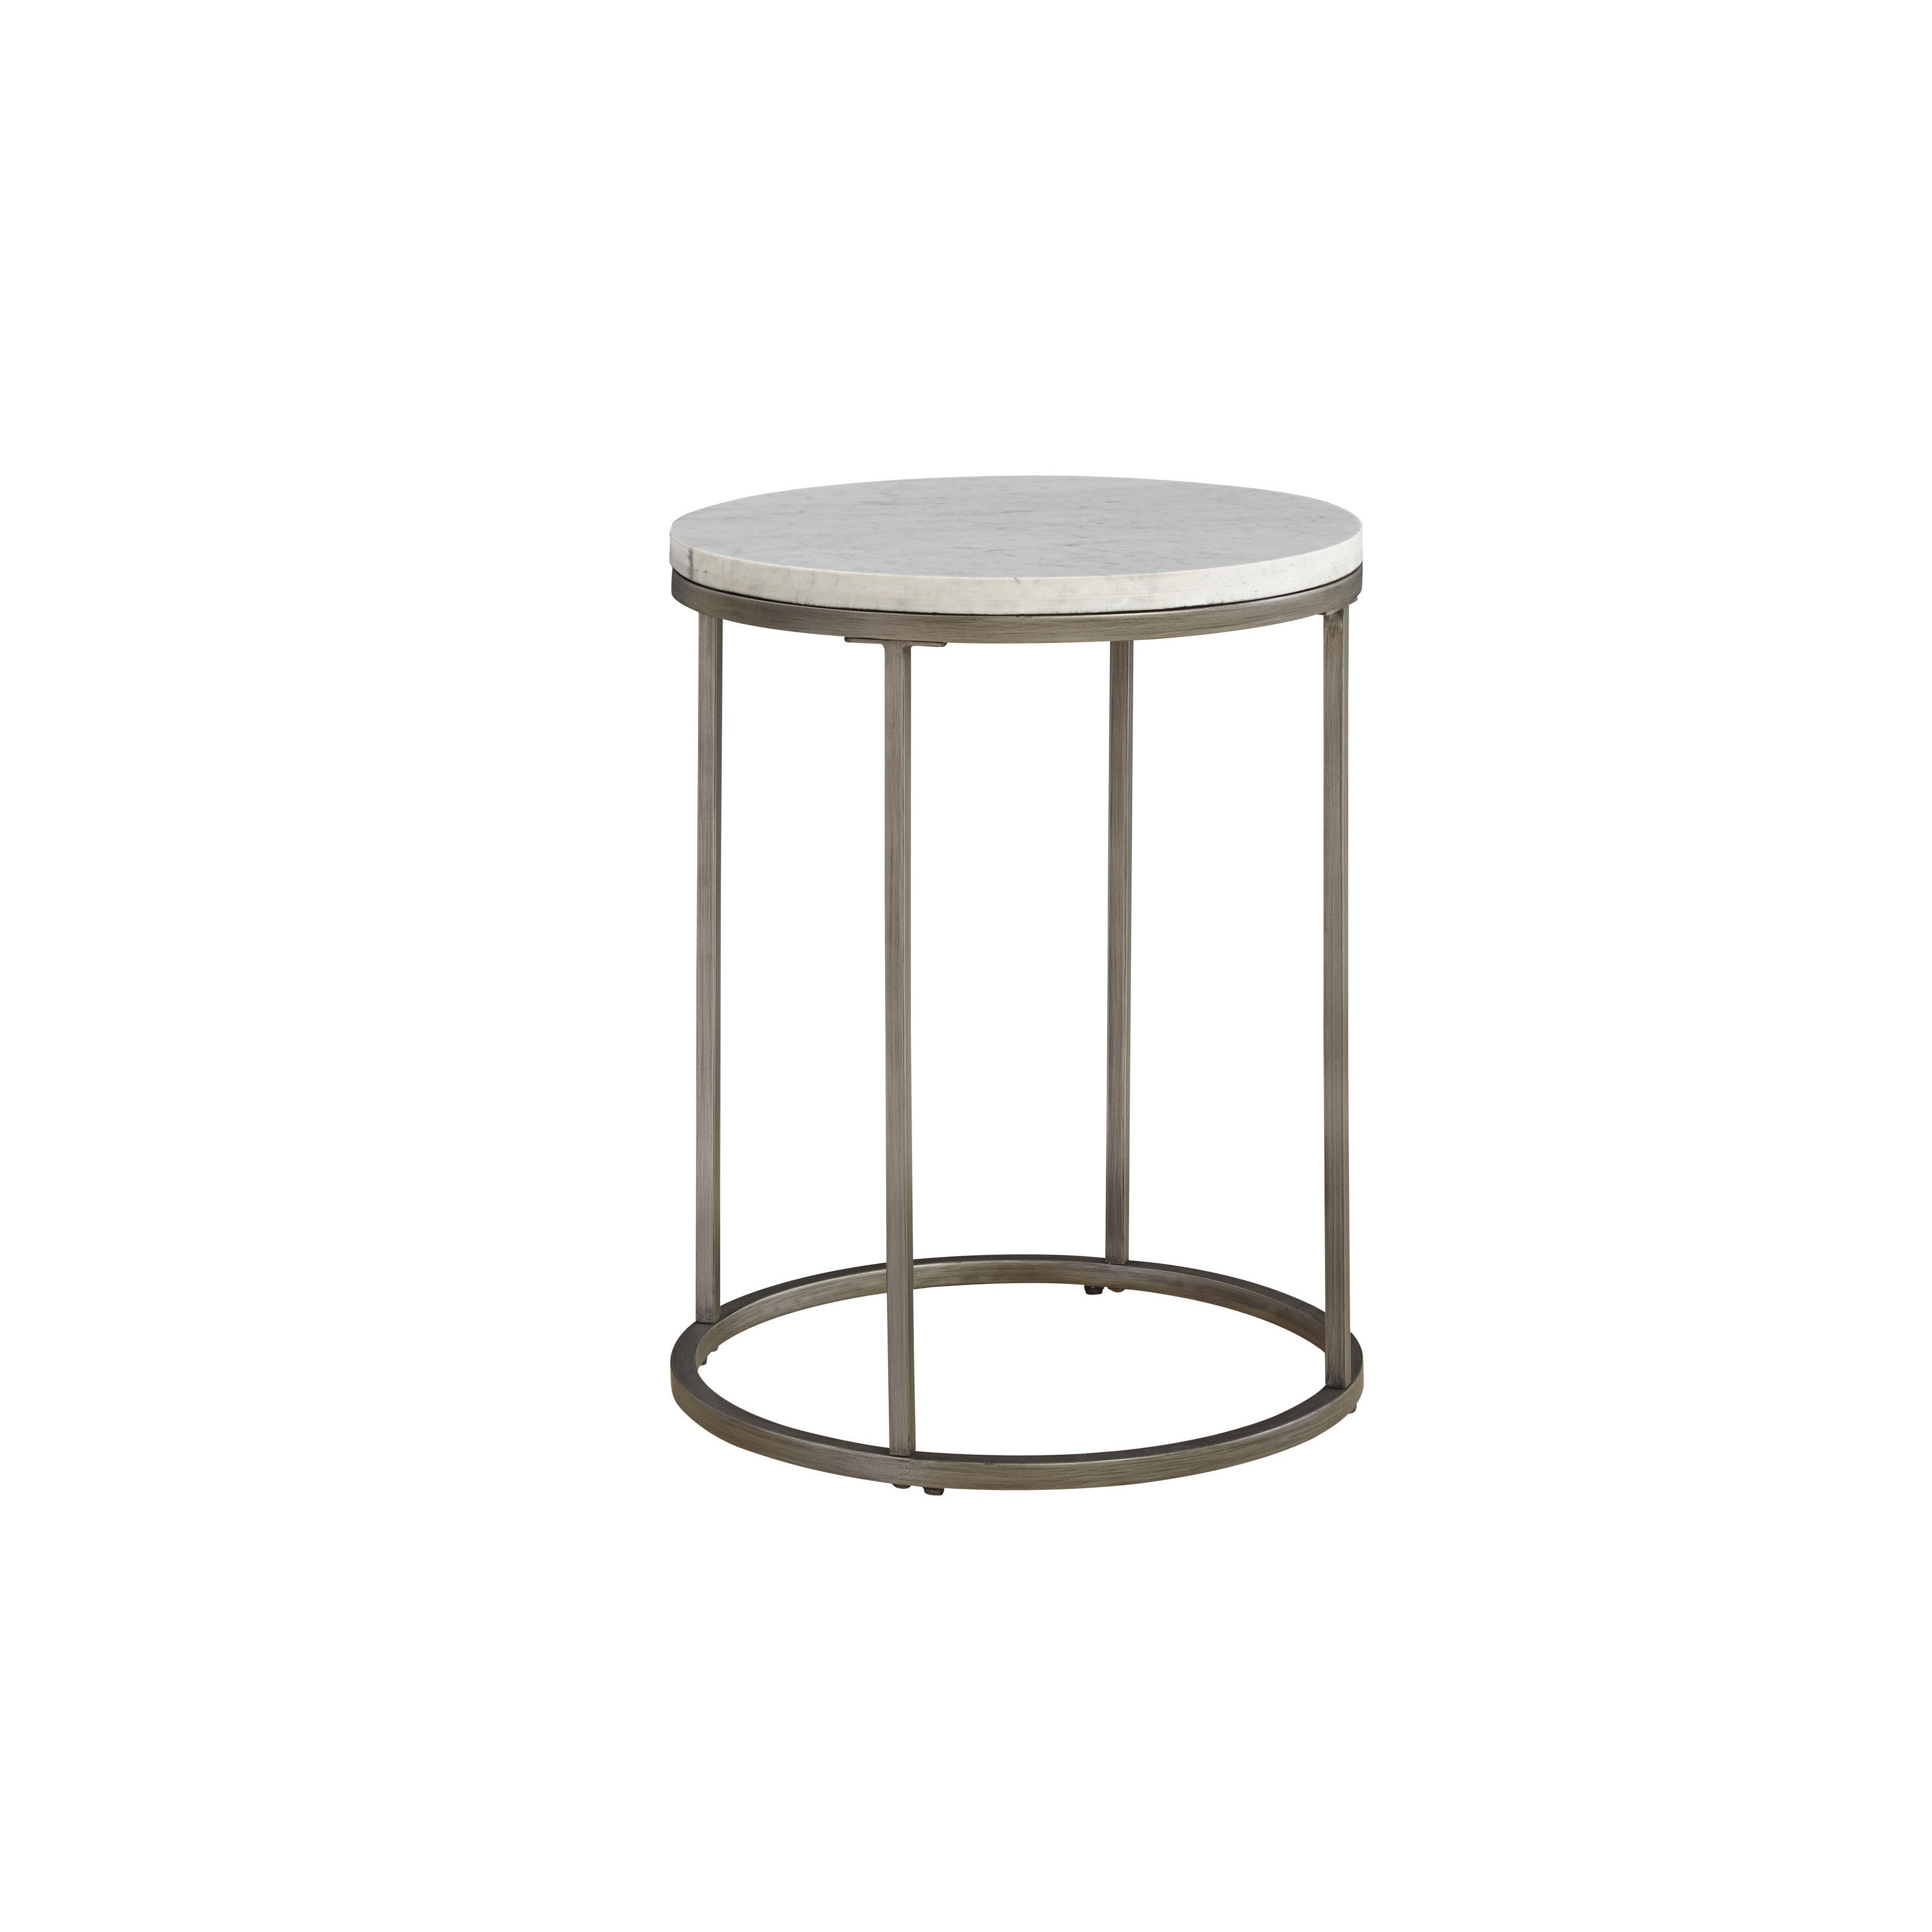 Shop COntemporary Alana White Marble Round Accent Table Free - White marble and metal round accent table